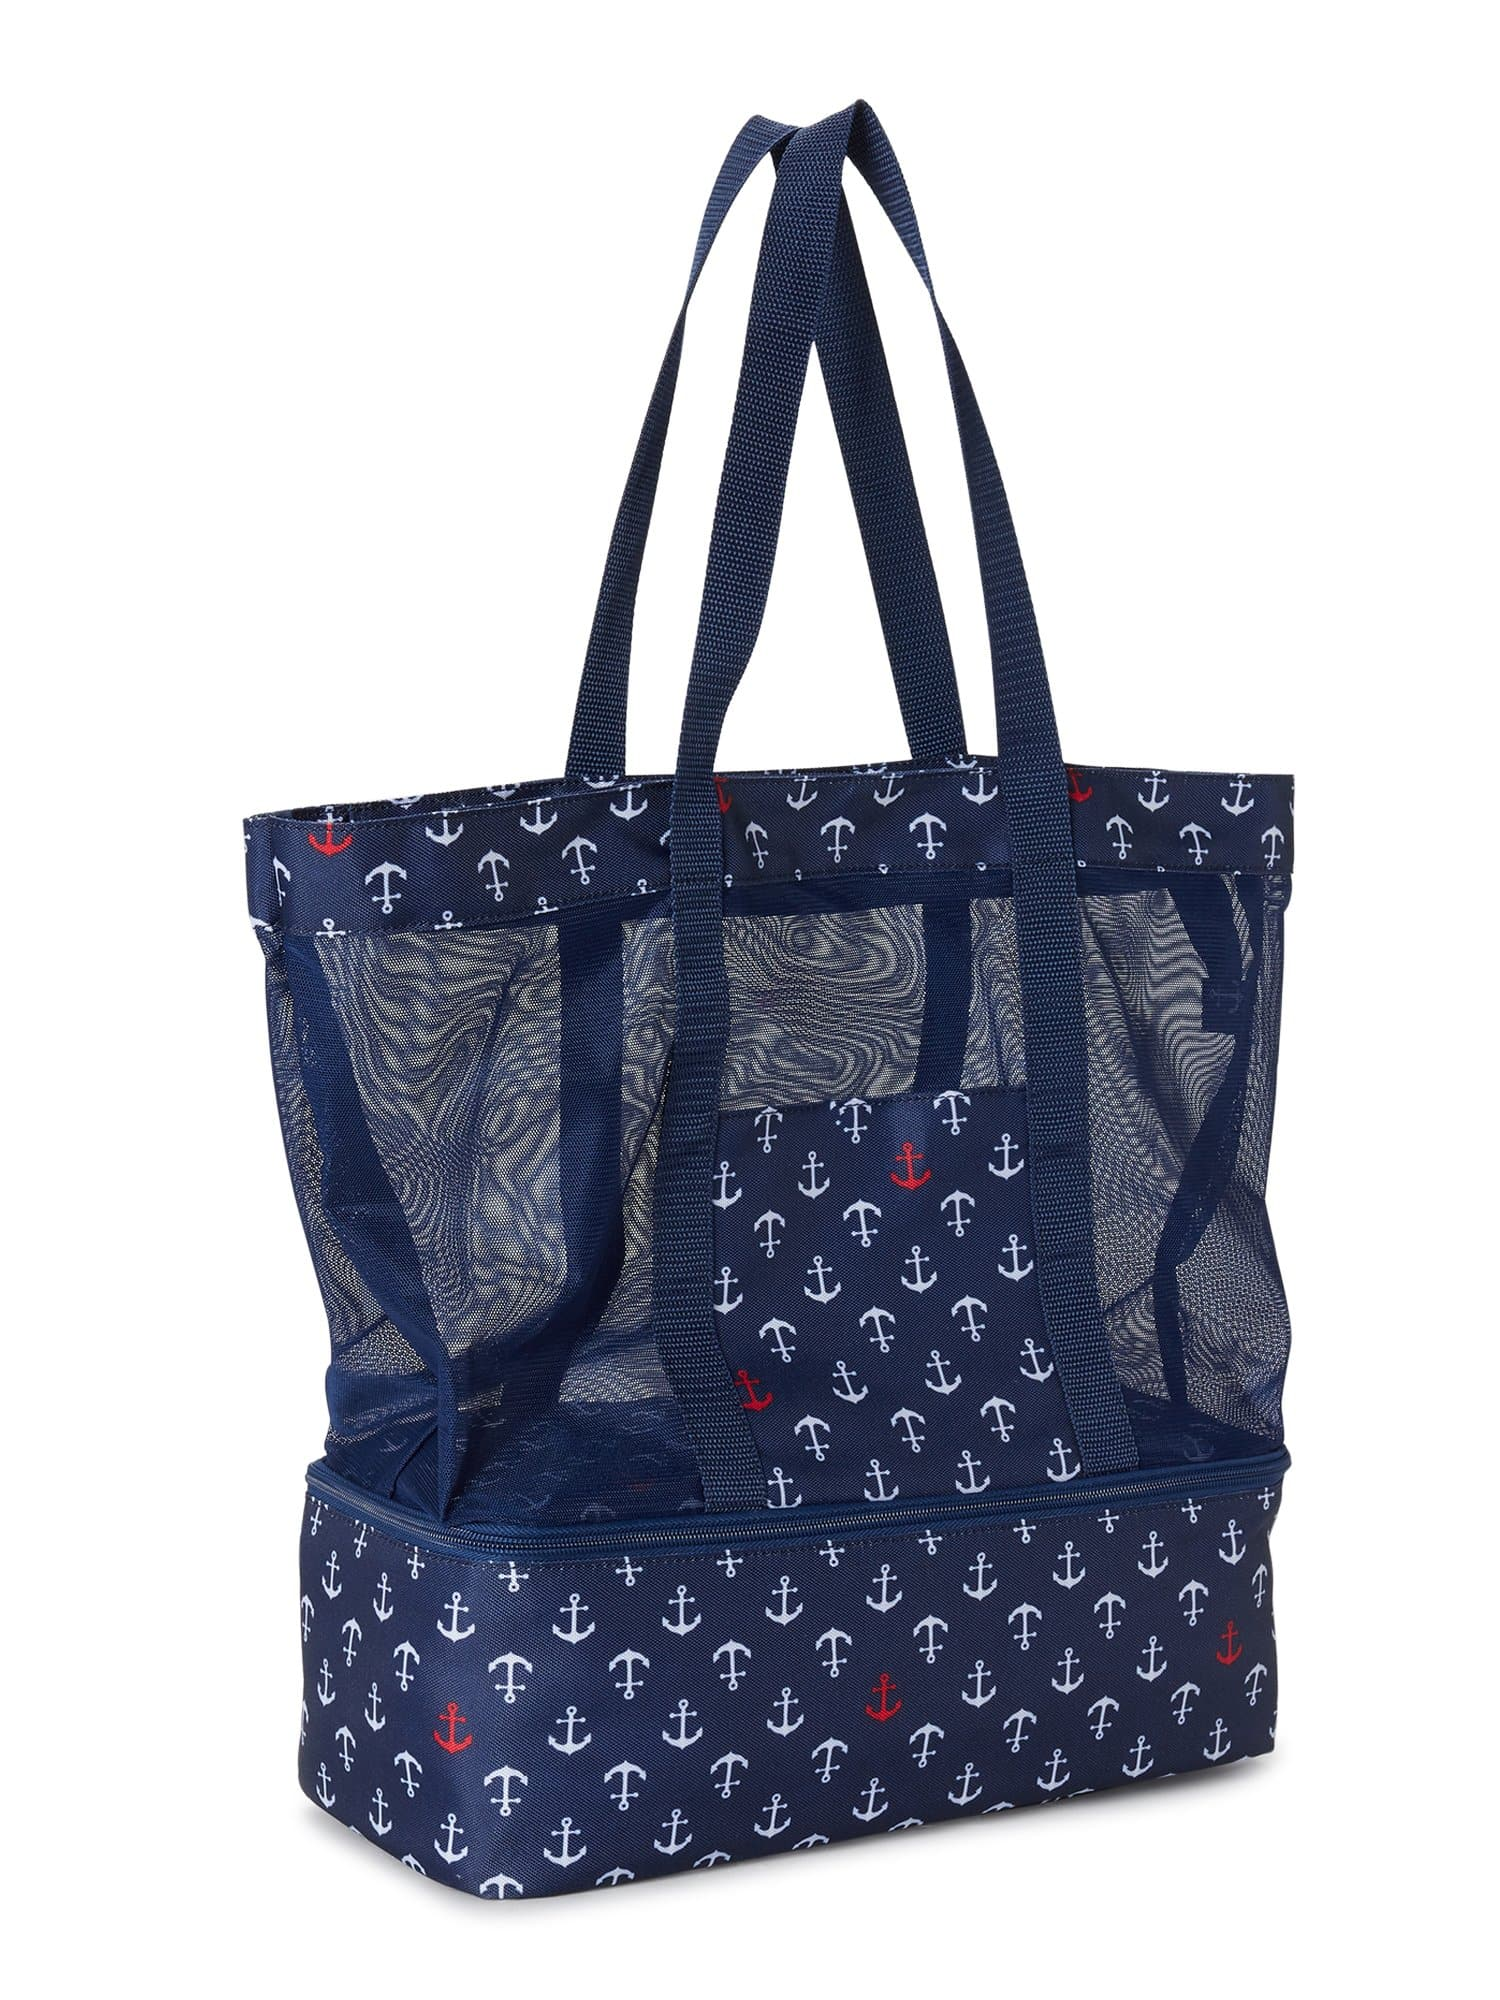 Mesh Zip Tote Bag - FLJ CORPORATIONS